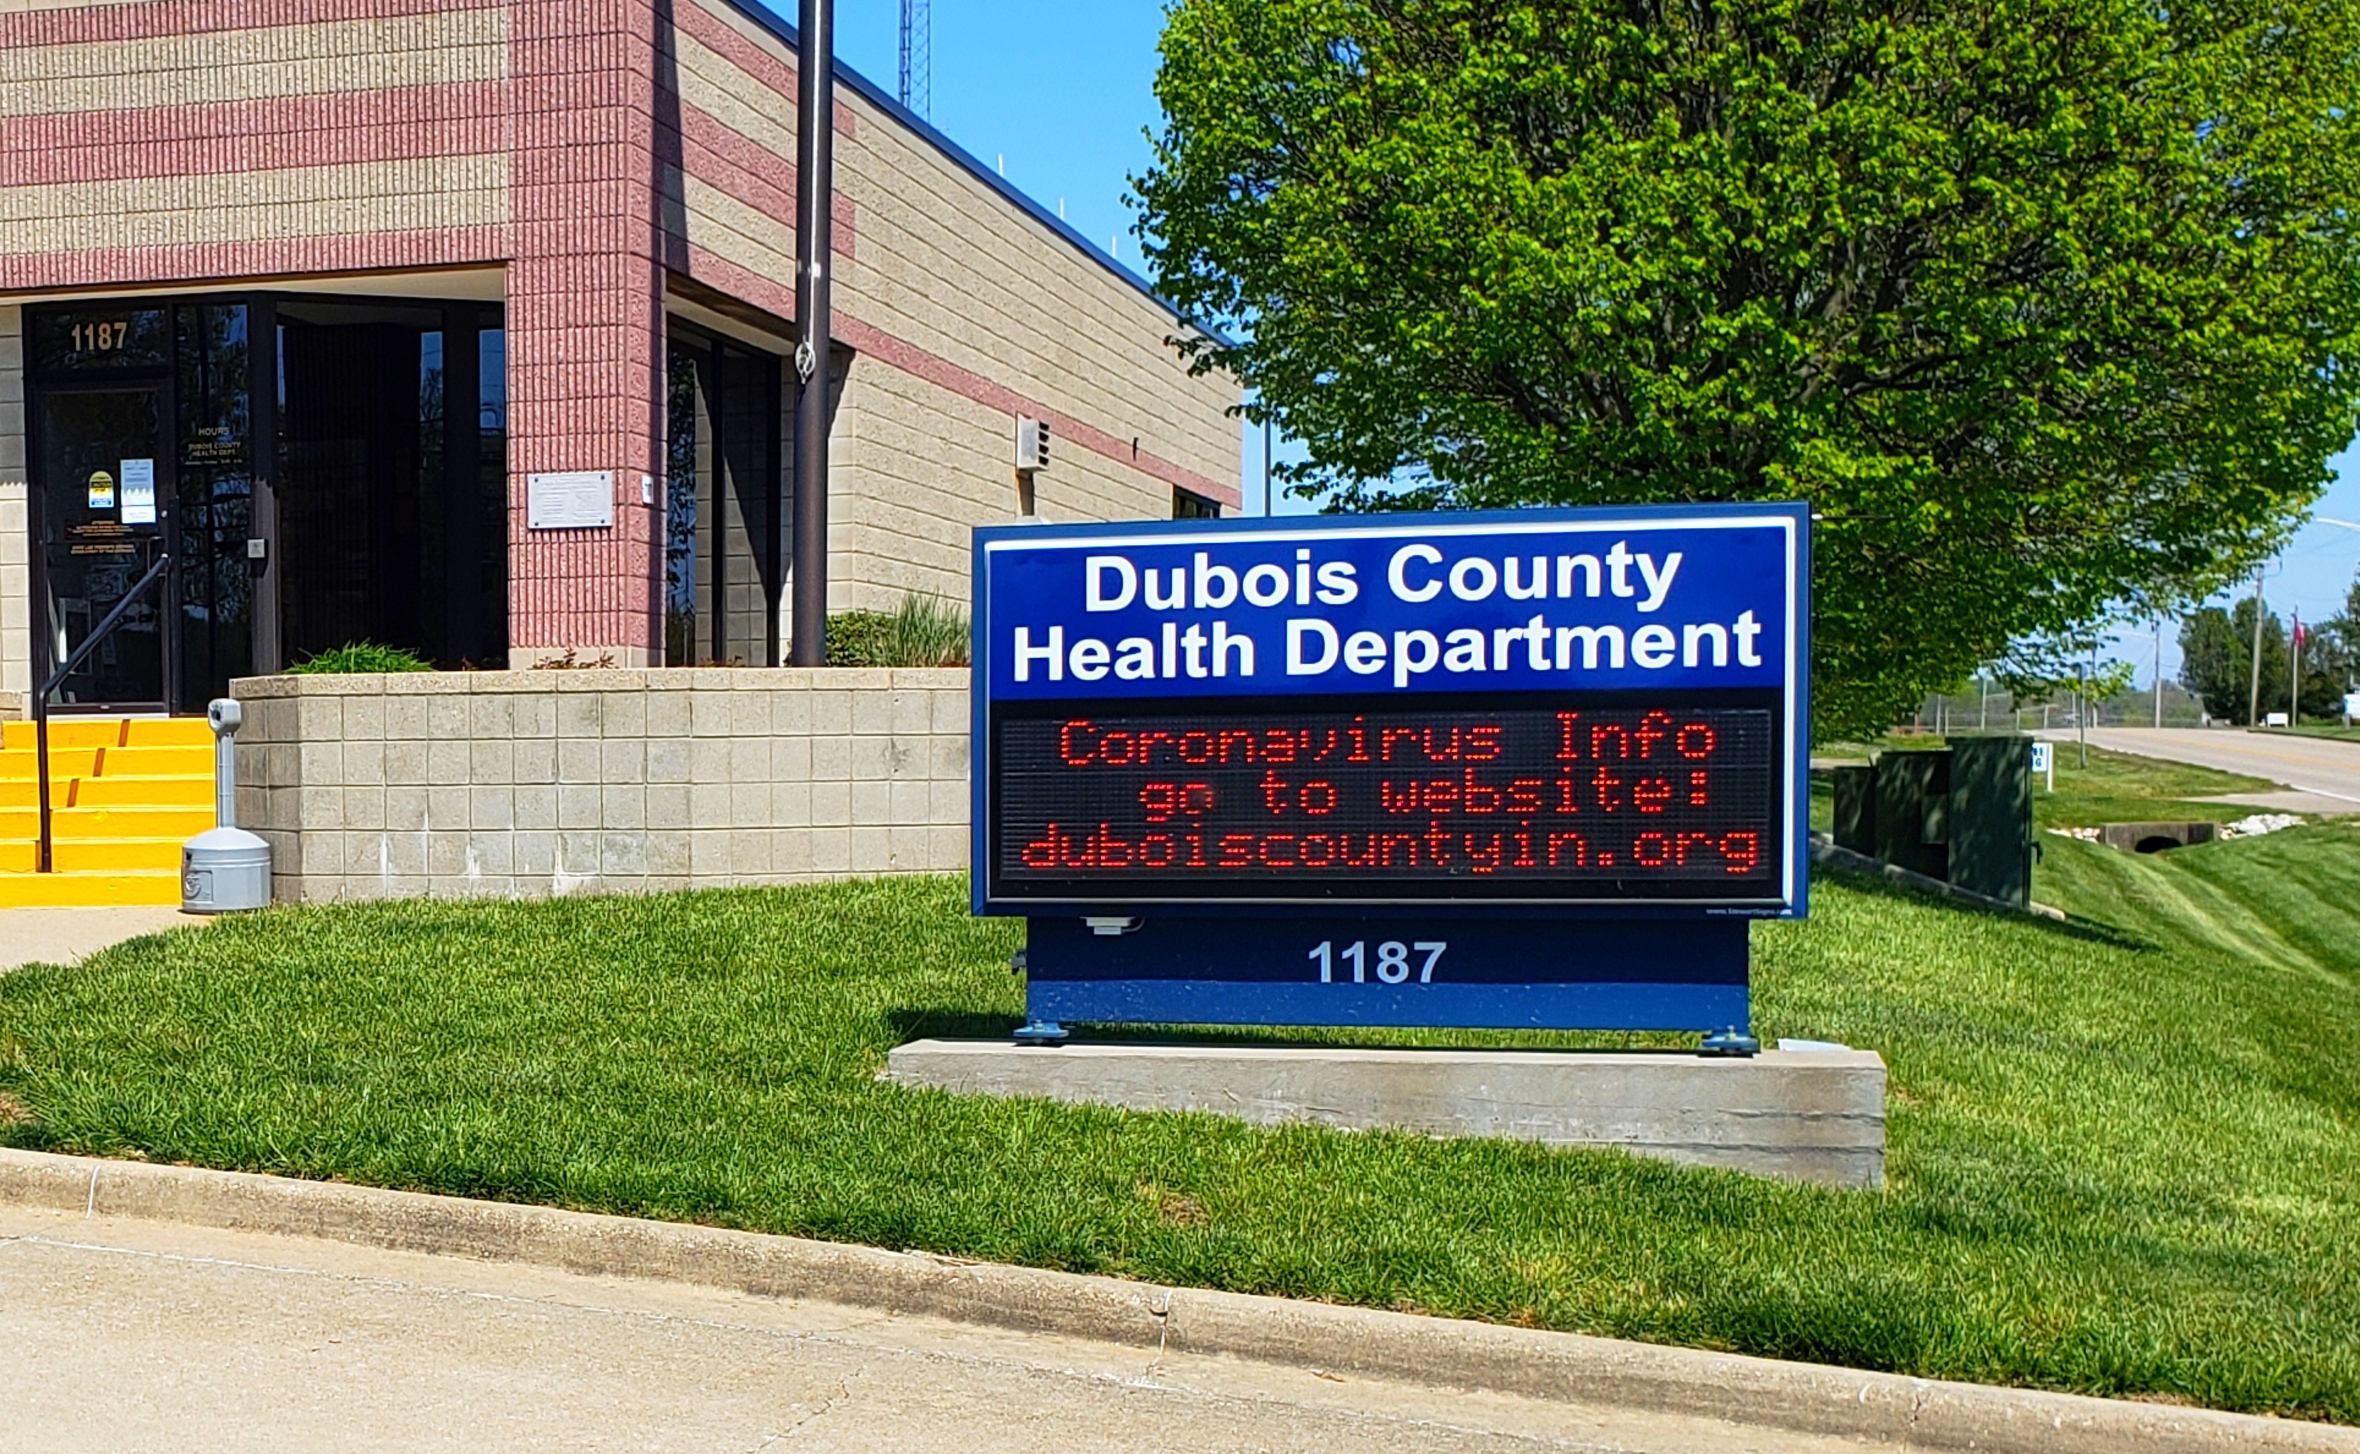 42 New Cases of COVID-19 Reported in Dubois County Monday